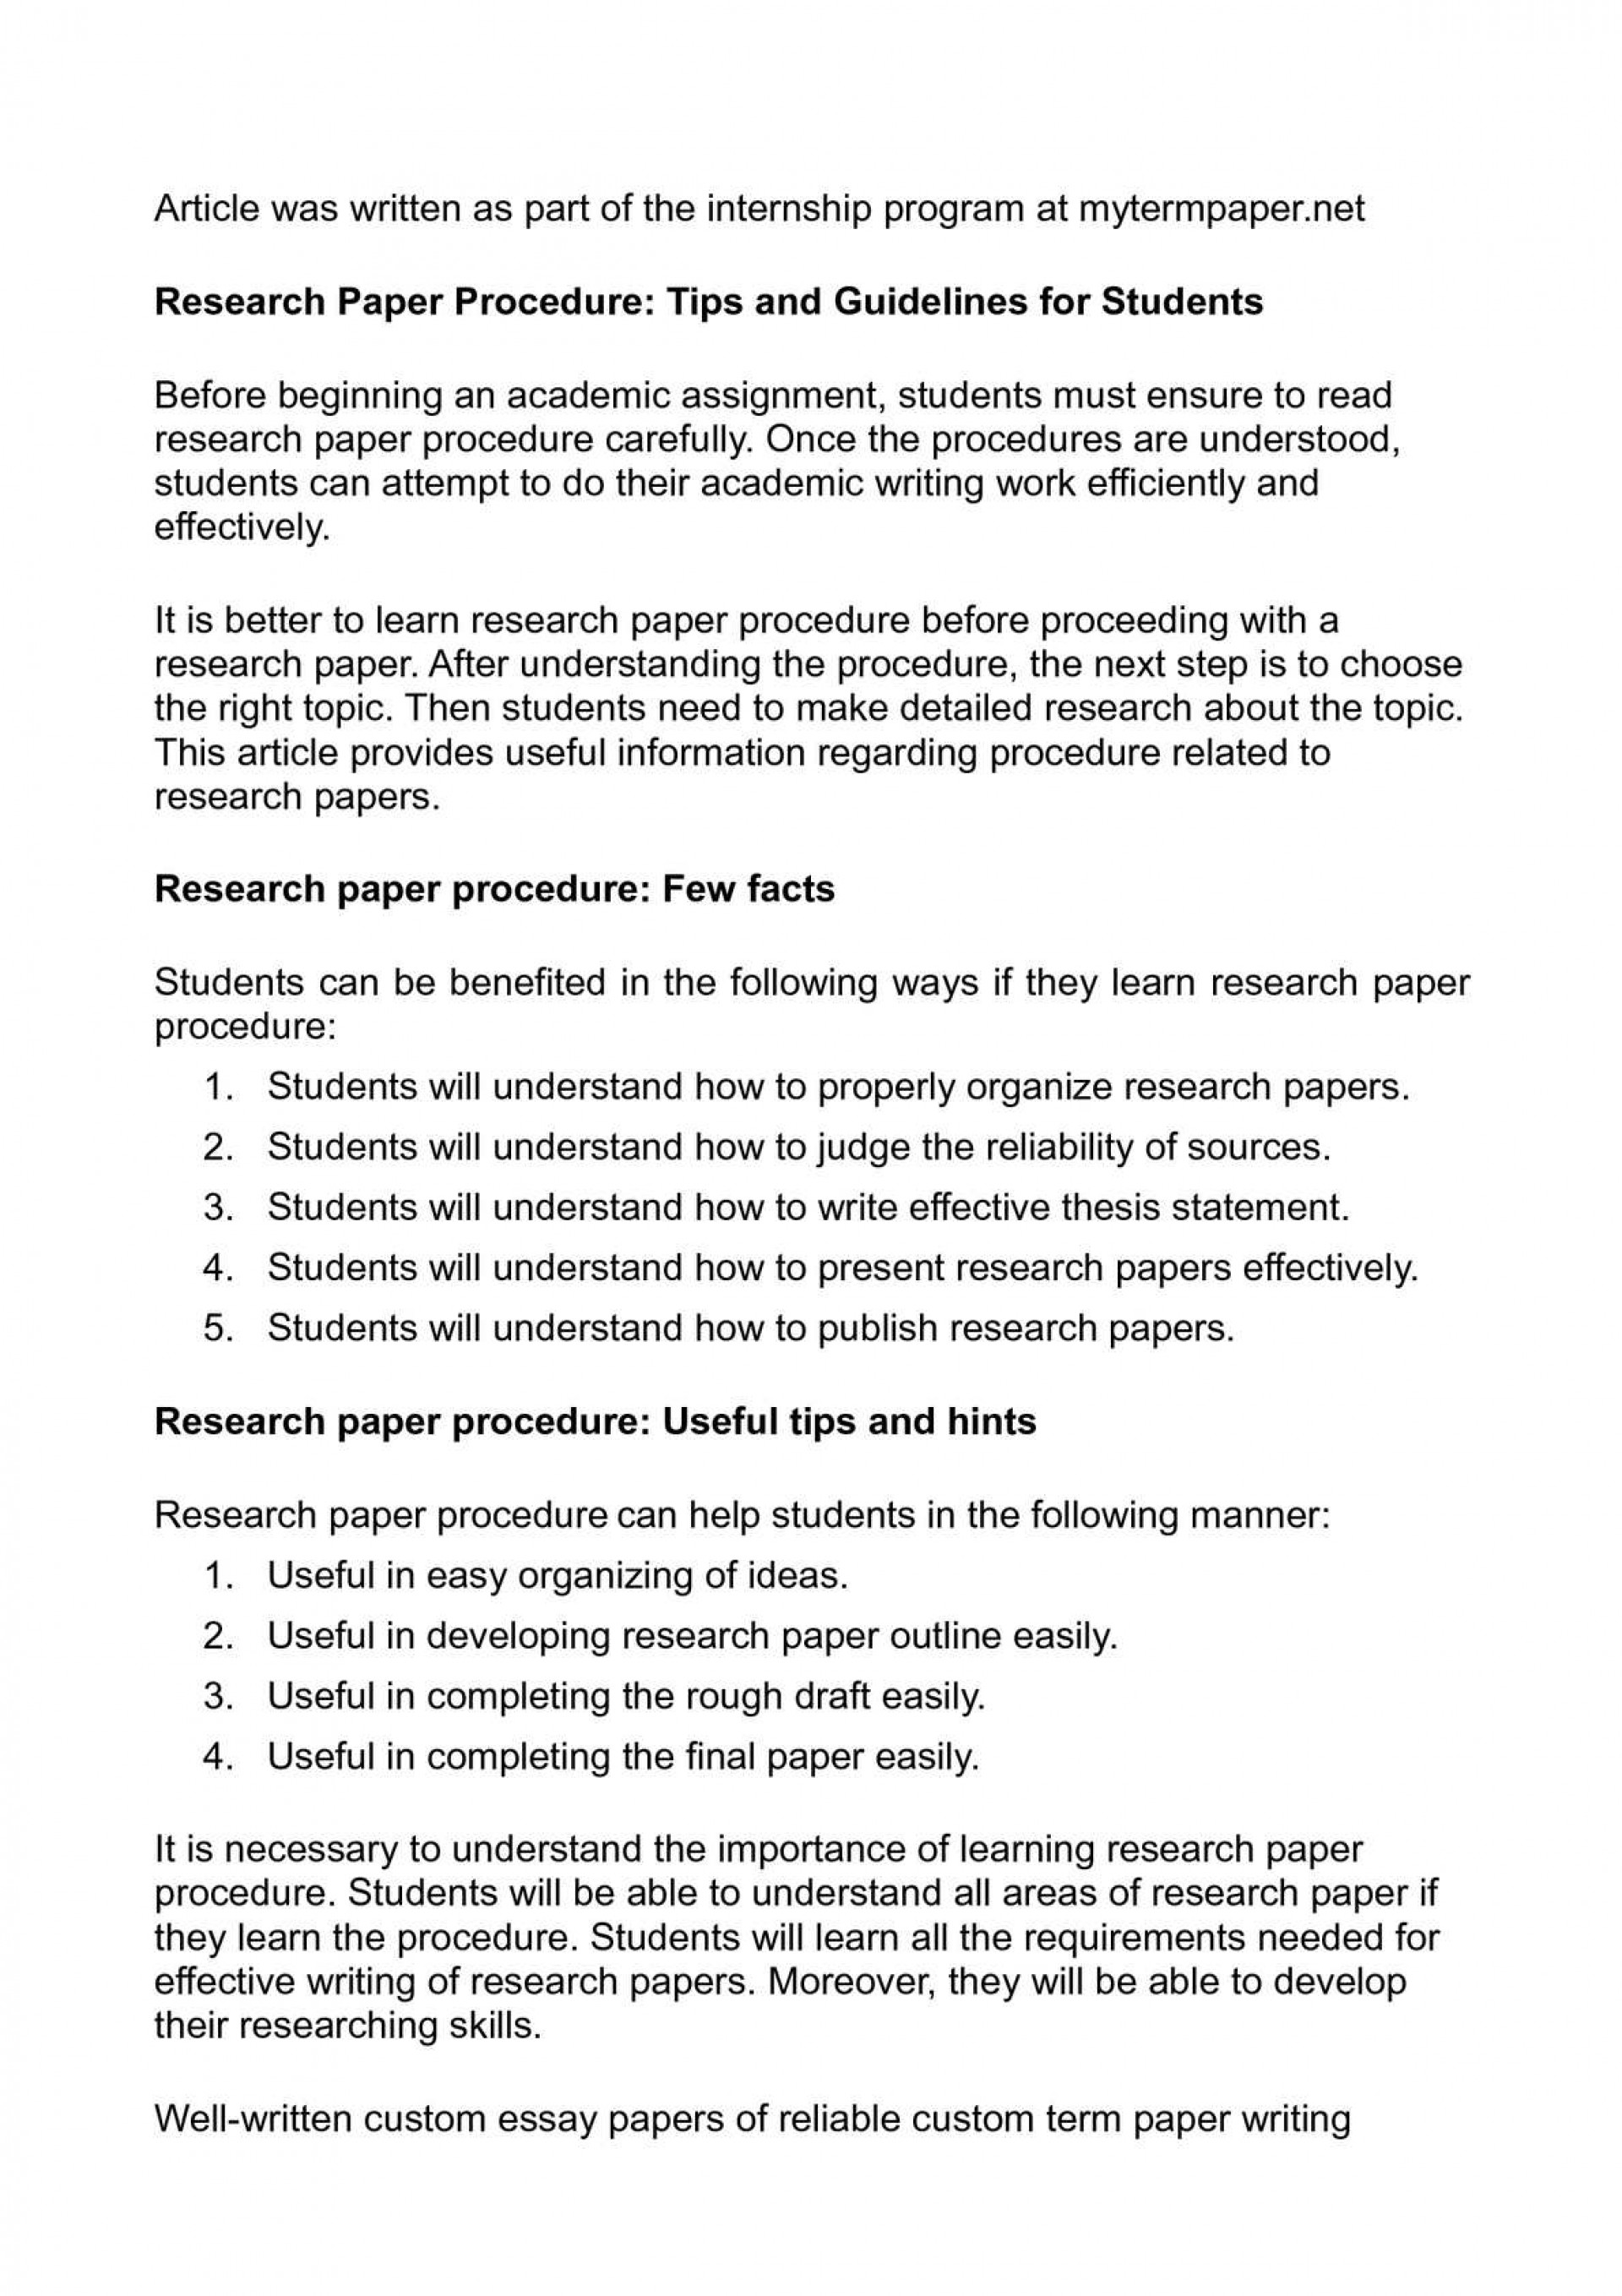 018 How To Do Research Paper Marvelous Write A Good Review Make Ppt For Presentation Notecards 1920